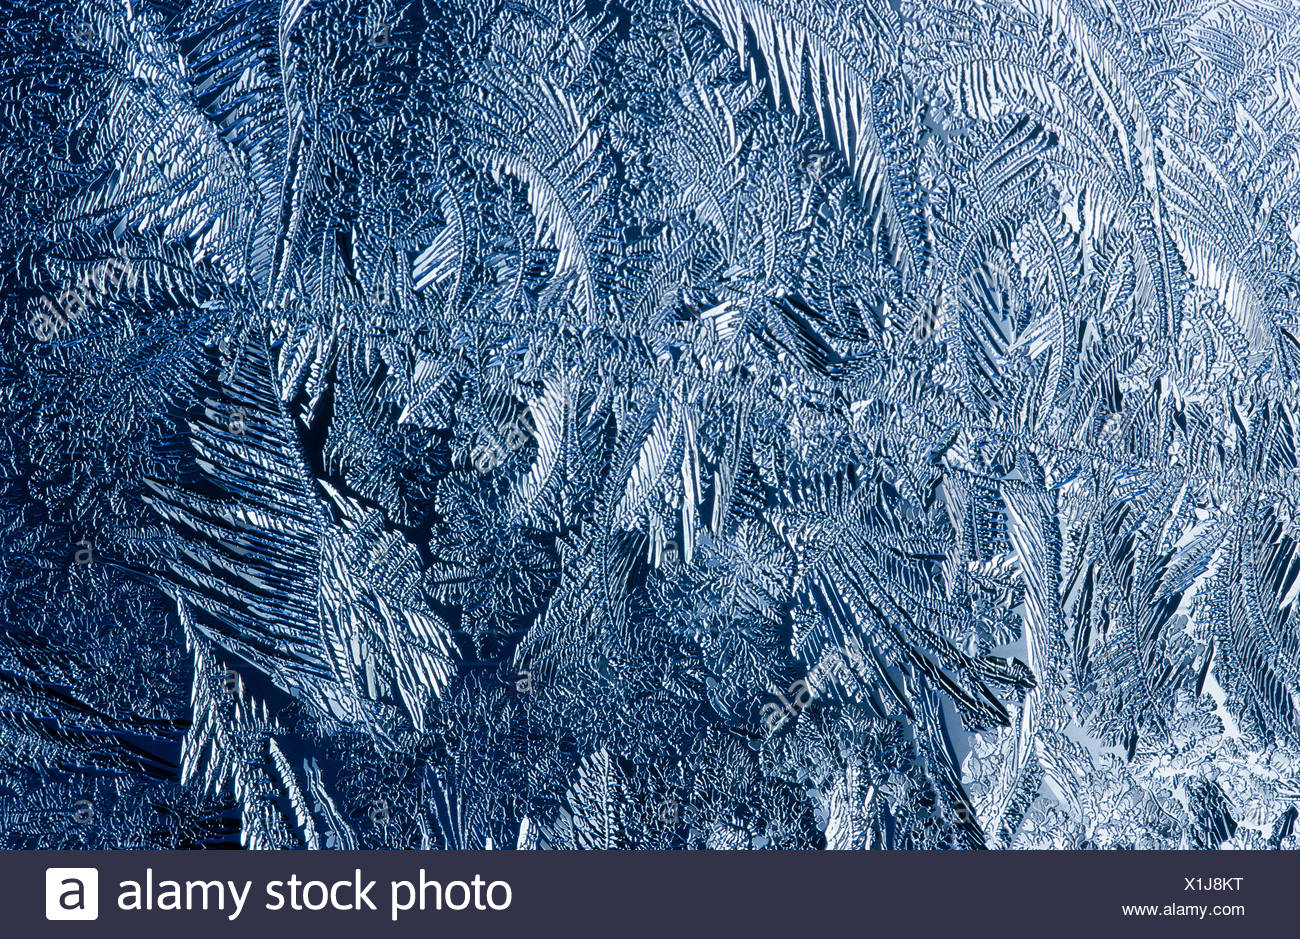 Frost pattern, ice flowers, ice crystals - Stock Image